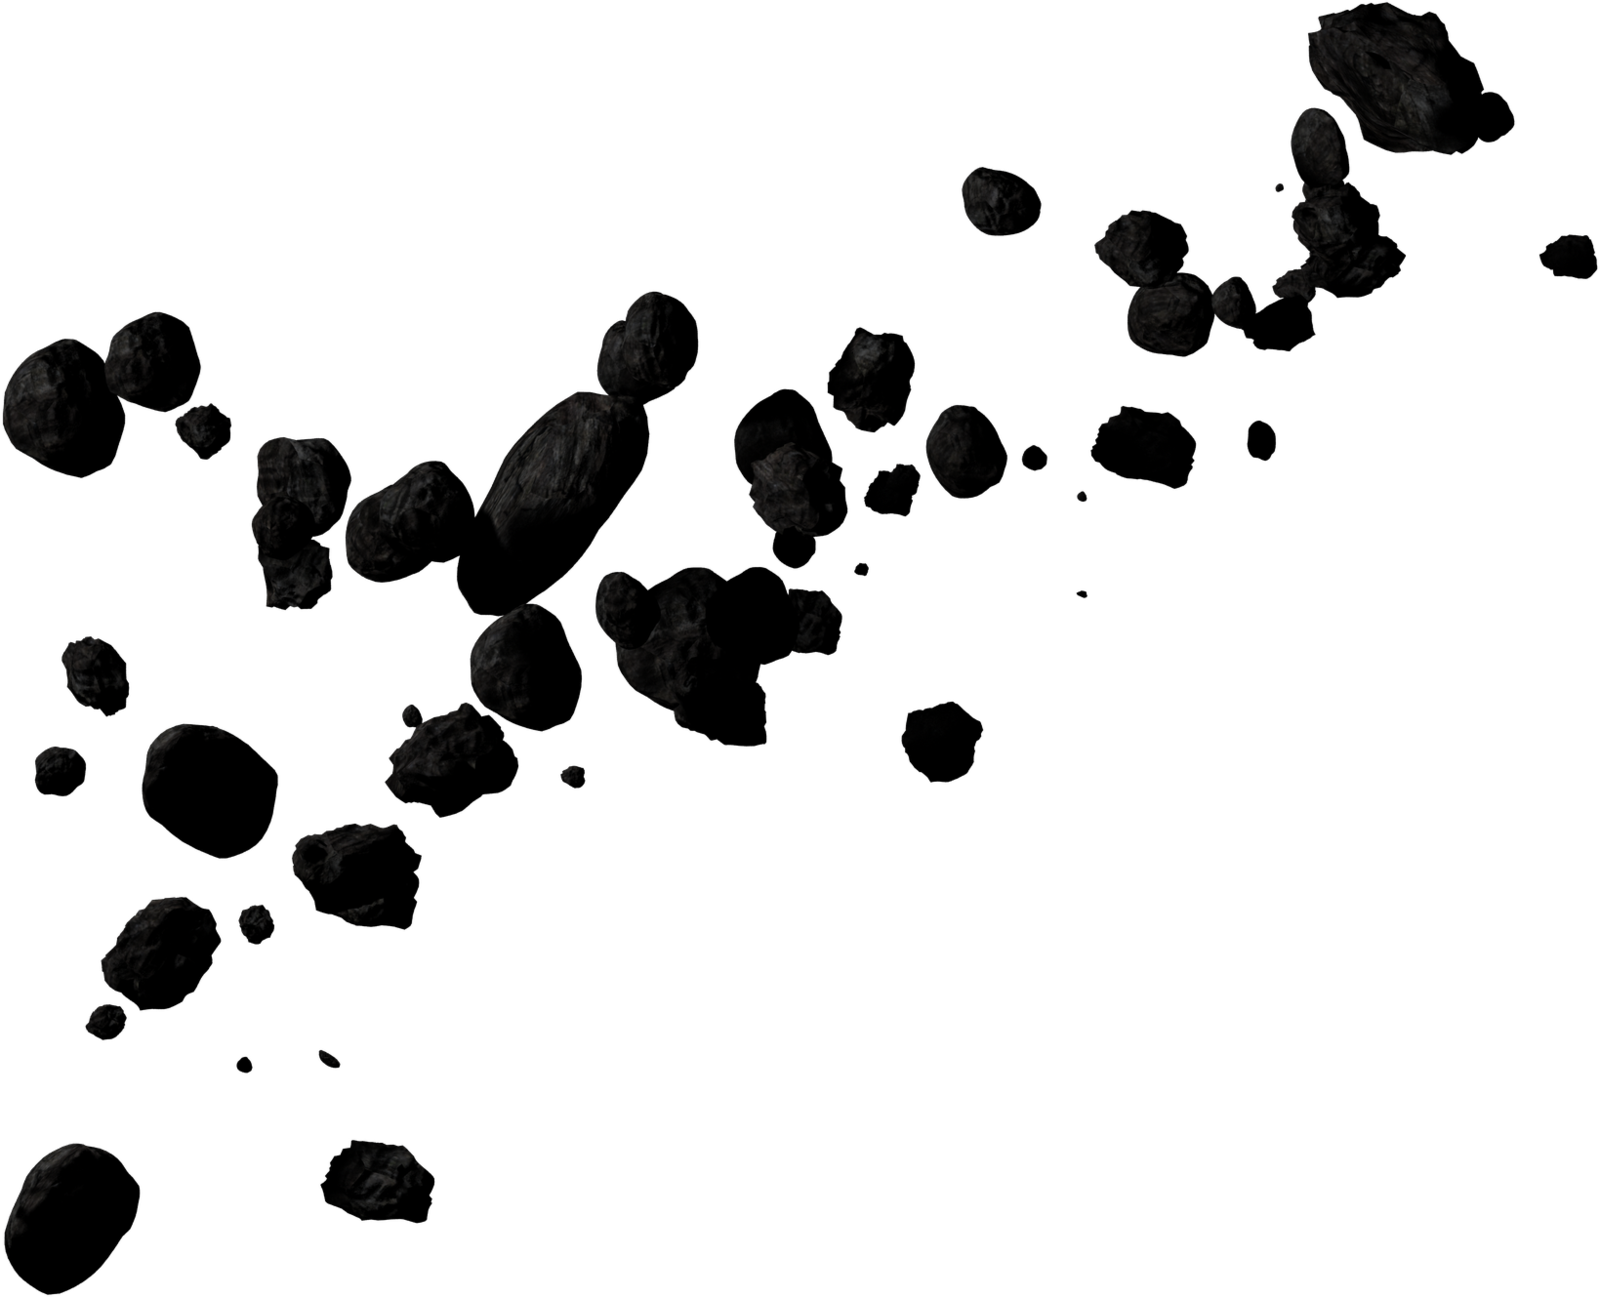 Meteor clipart transparent background. Asteroid png images free